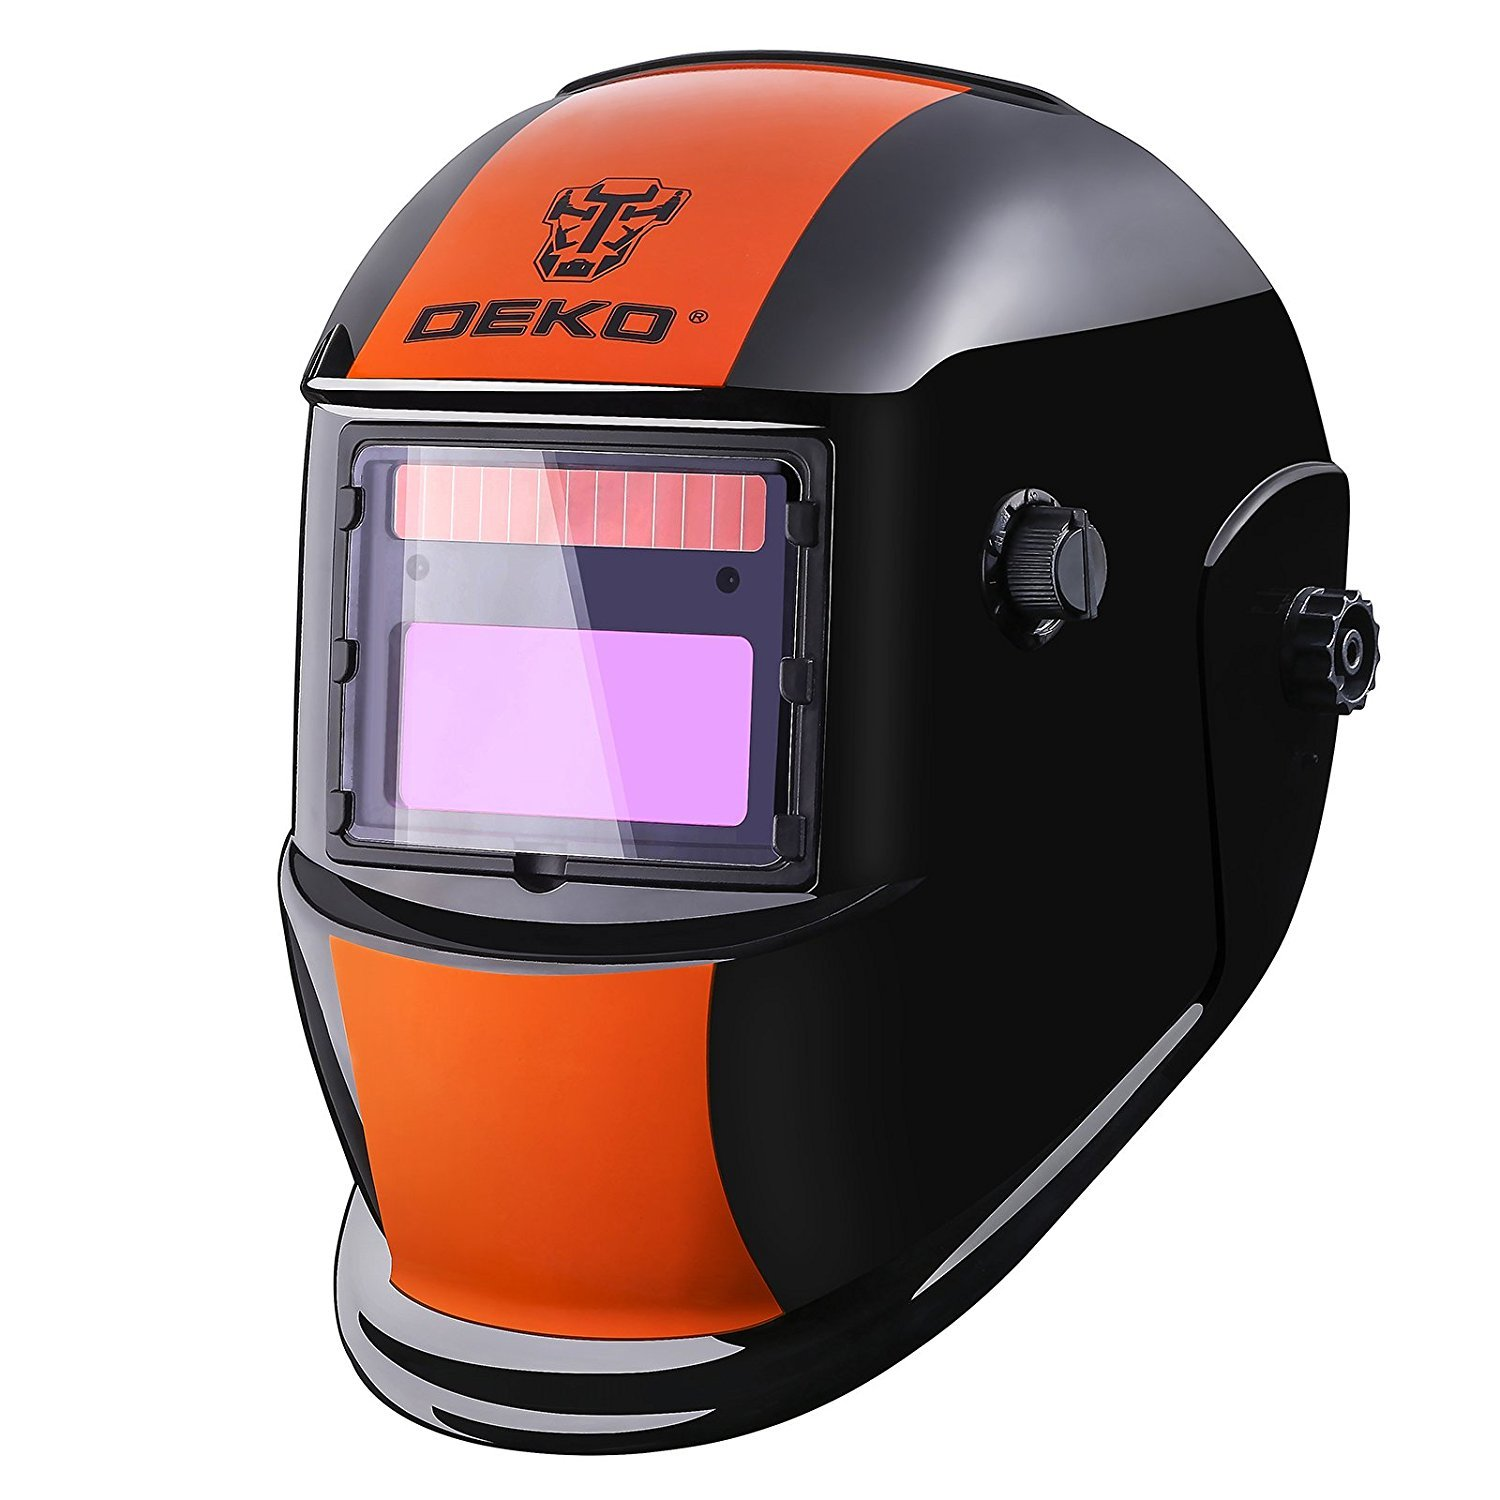 DEKOPRO Welding Helmet Solar Powered Auto Darkening Hood with Adjustable Shade Range 4/9-13 for Mig Tig Arc Welder Orange Black by DEKOPRO